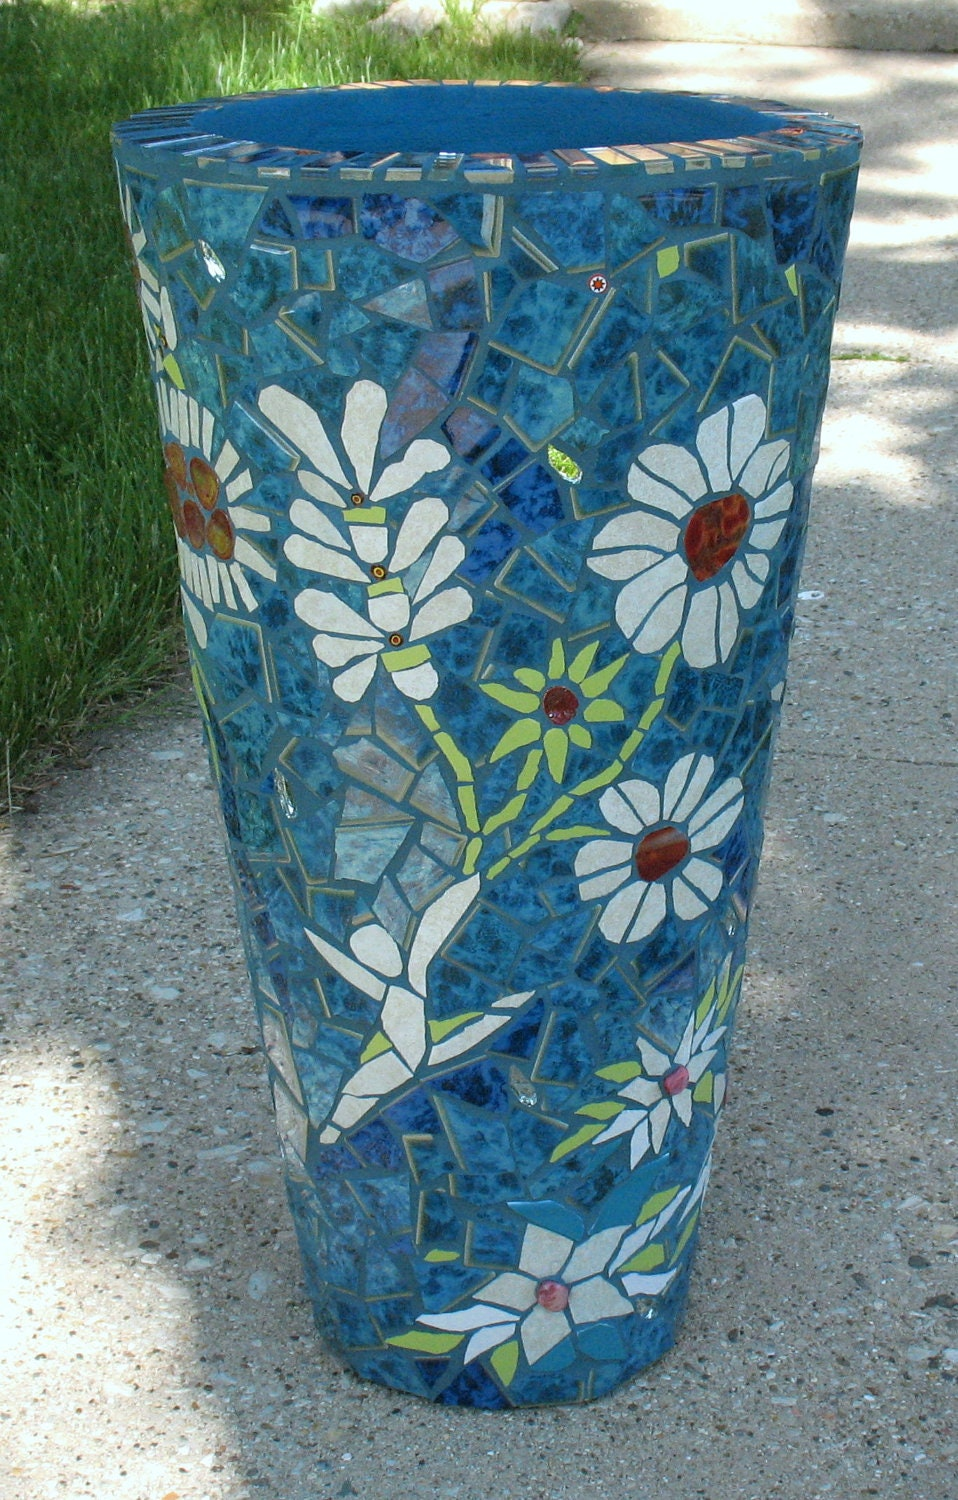 Dancing Flowers Mosaic Flower Pot Mosaic By Mosaicrenaissance